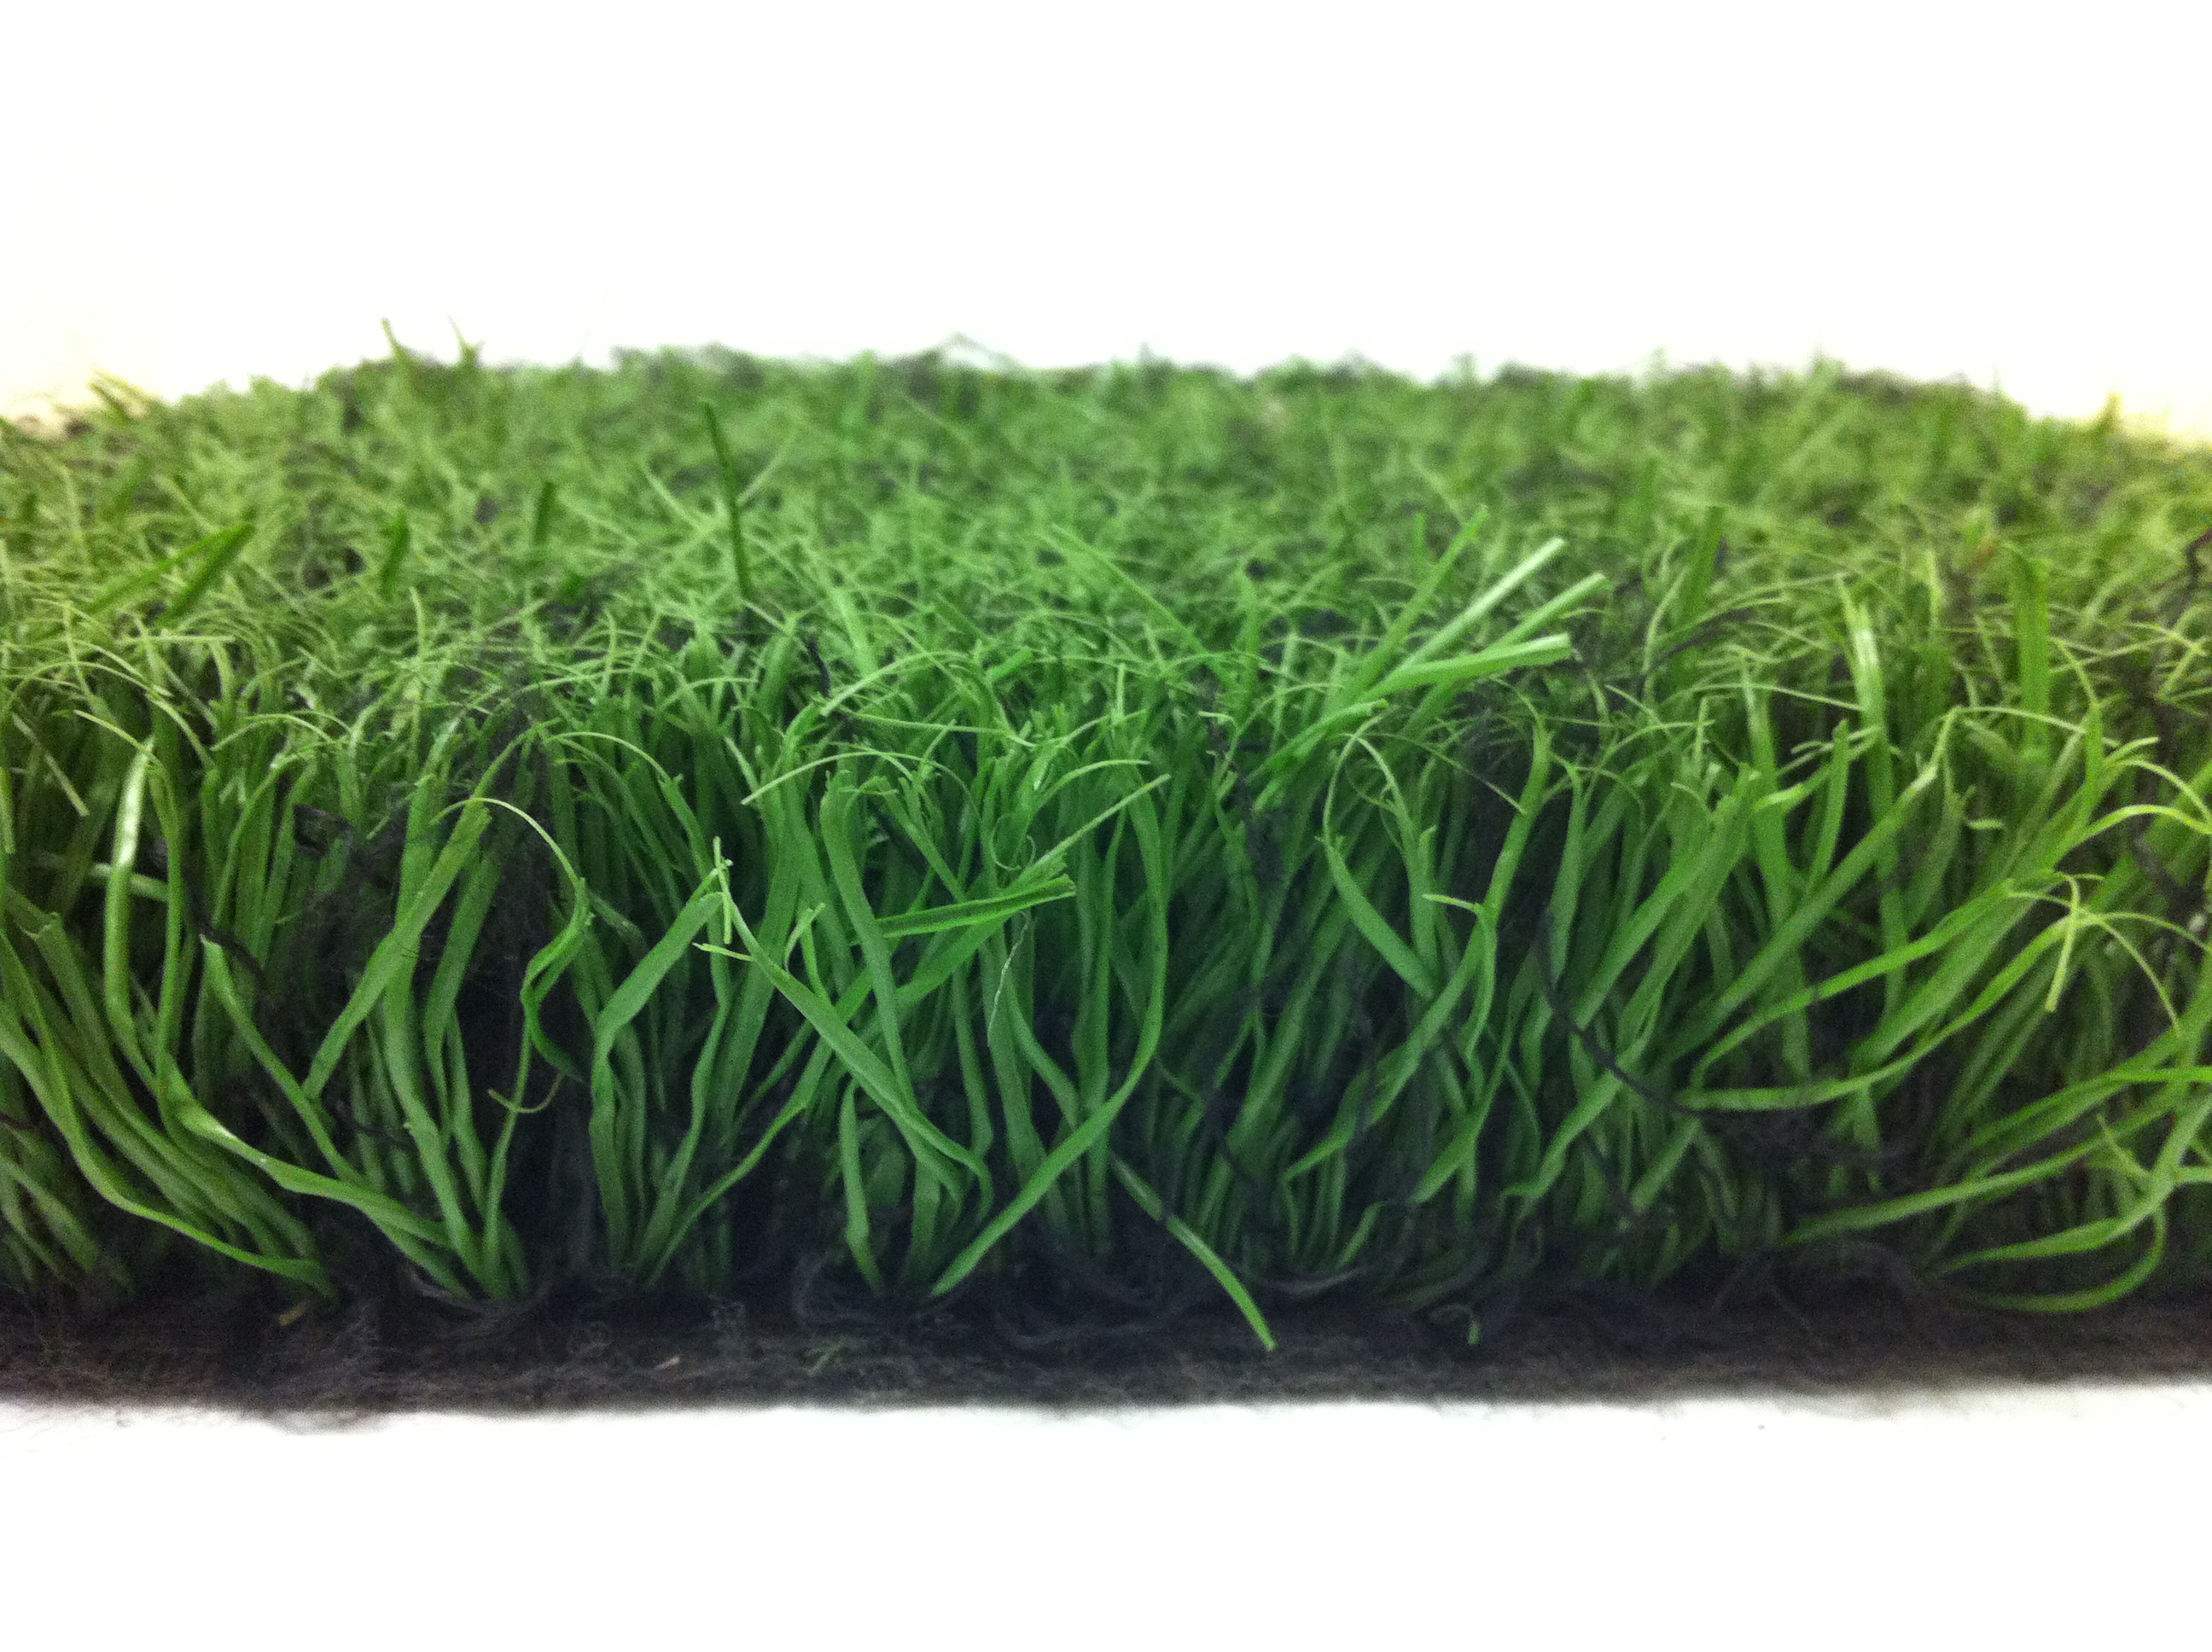 Artificial turf Dog Used Synthetic Turf Is Our Most Popular Turf Product As It Offers Great Surfacing Solution For Most Facilities Seeking The Lowest Cost Product That Put Redexim Used Turf 075 Per Sqft Freight Used Artificial Turf Rs